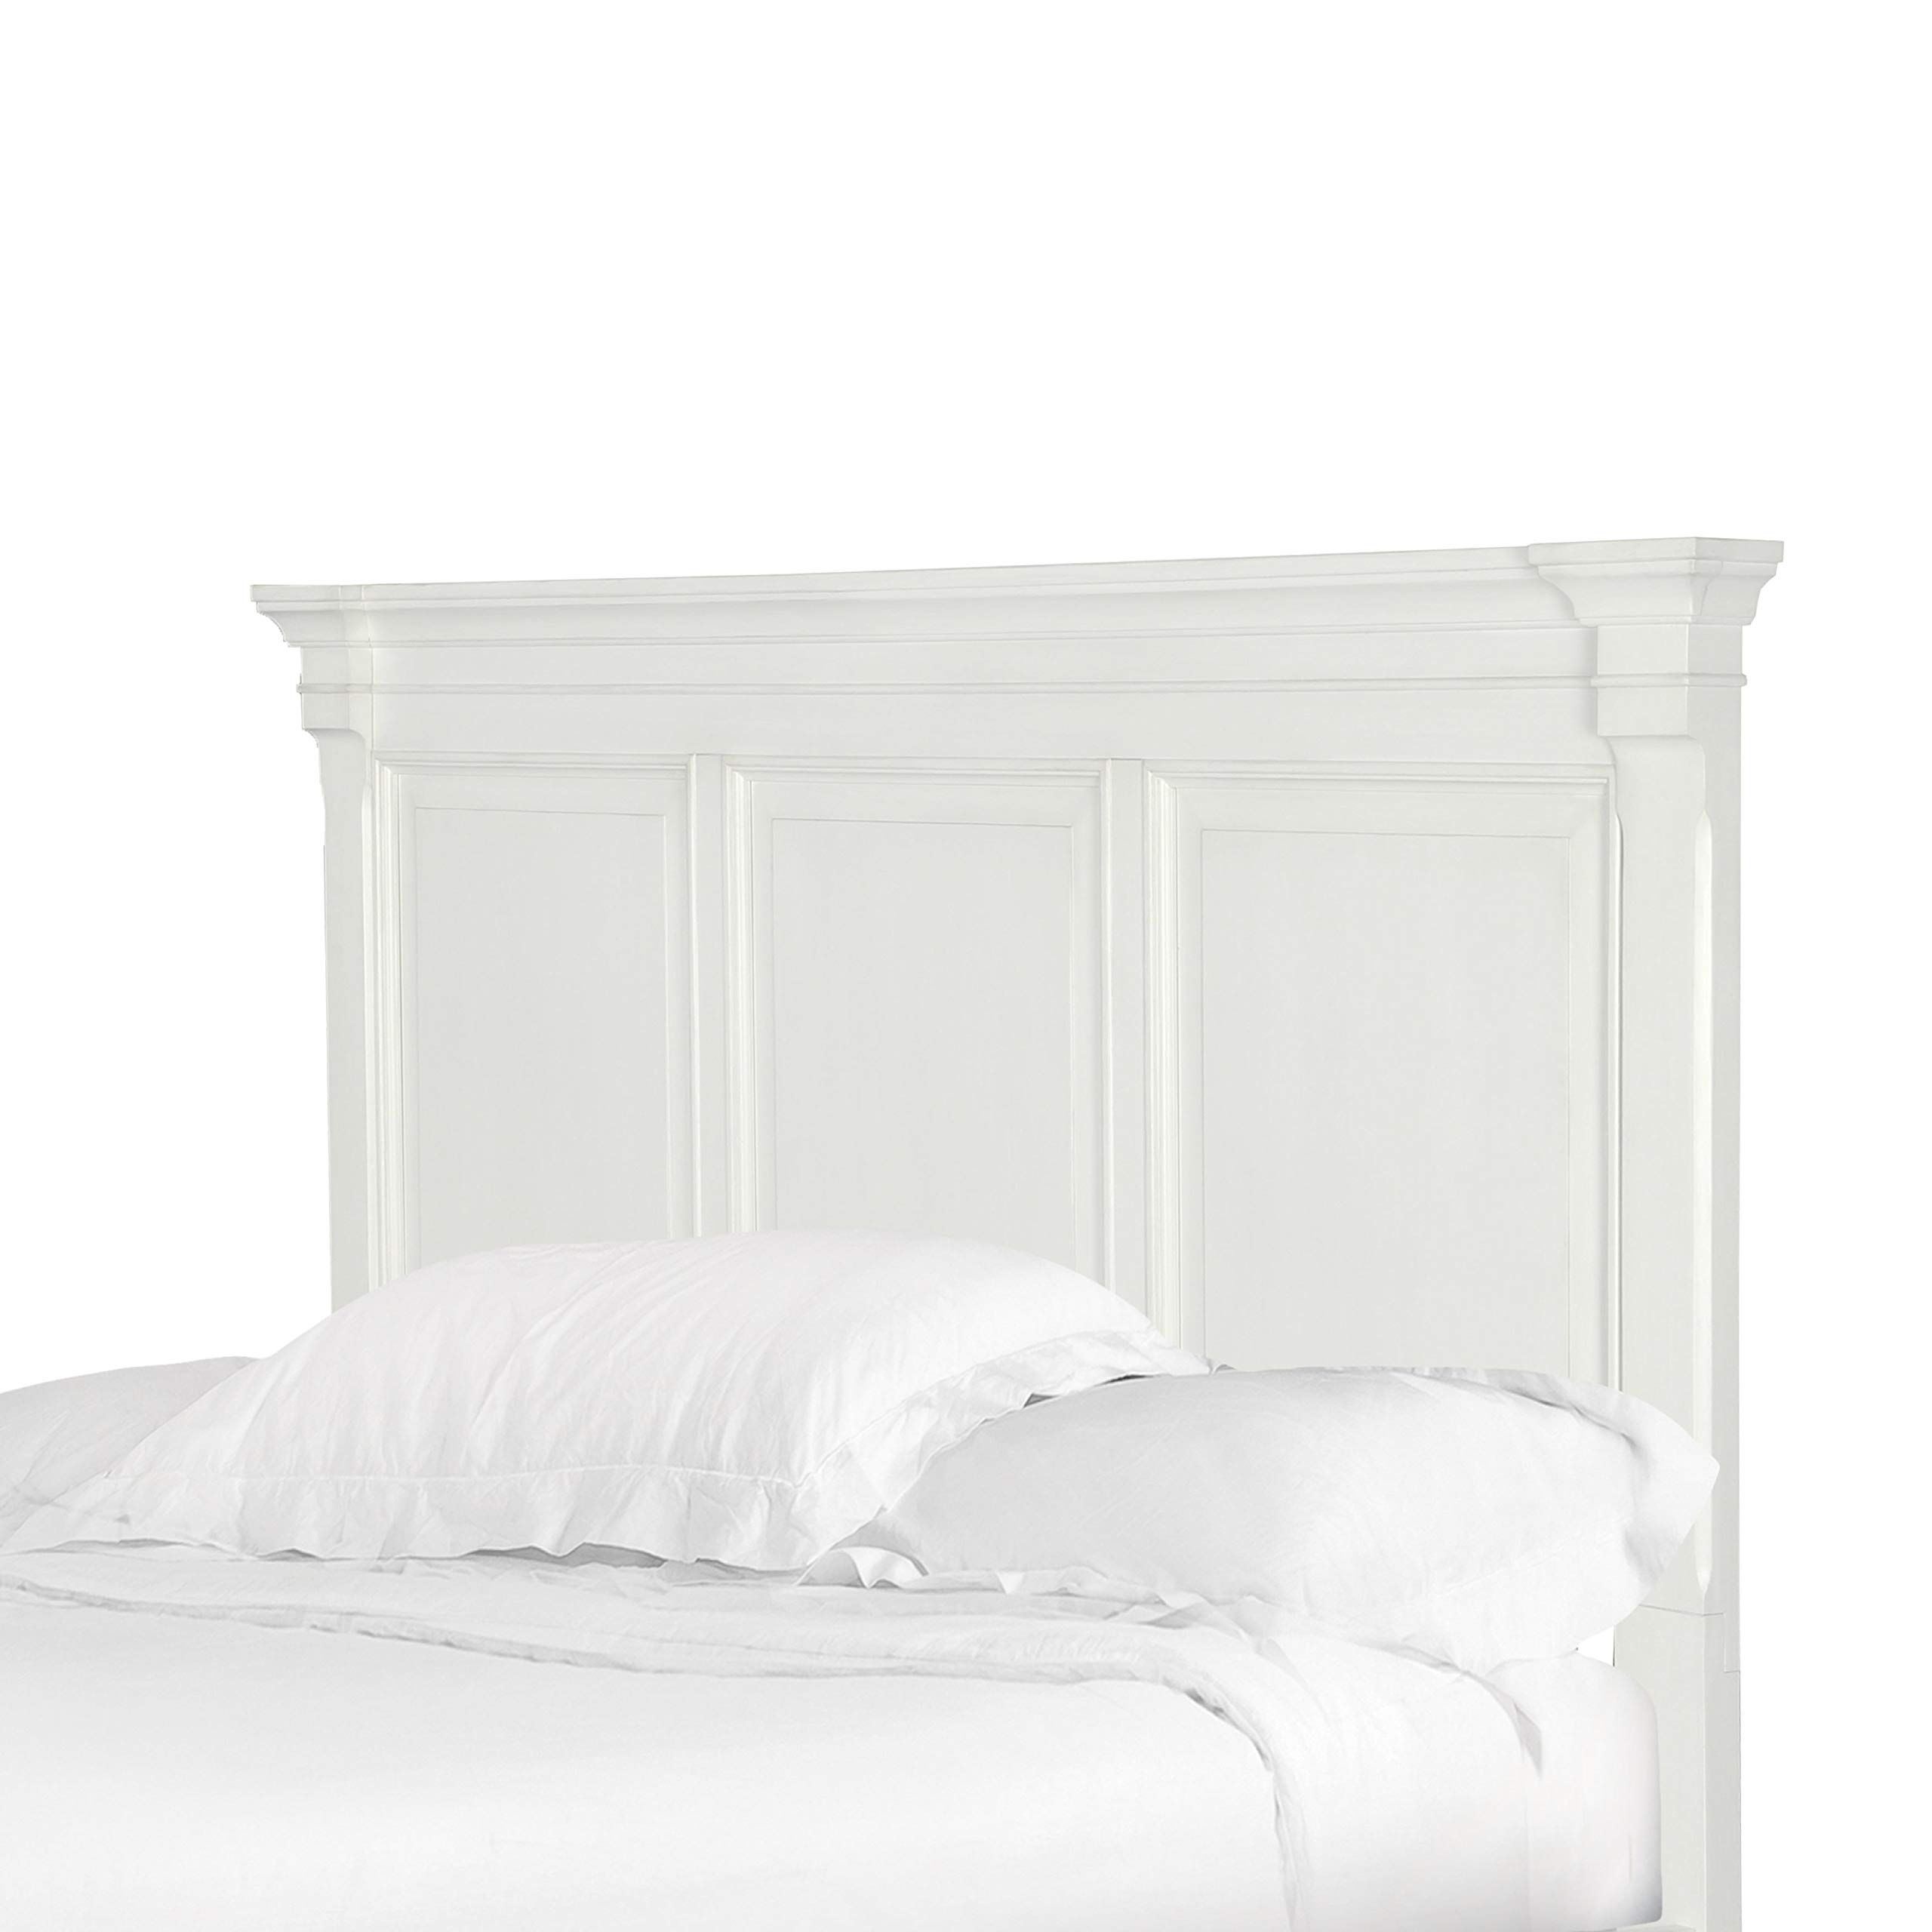 Brookefield Cotton White Queen Panel Headboard Transitional MDF Wood Includes Hardware by Unknown